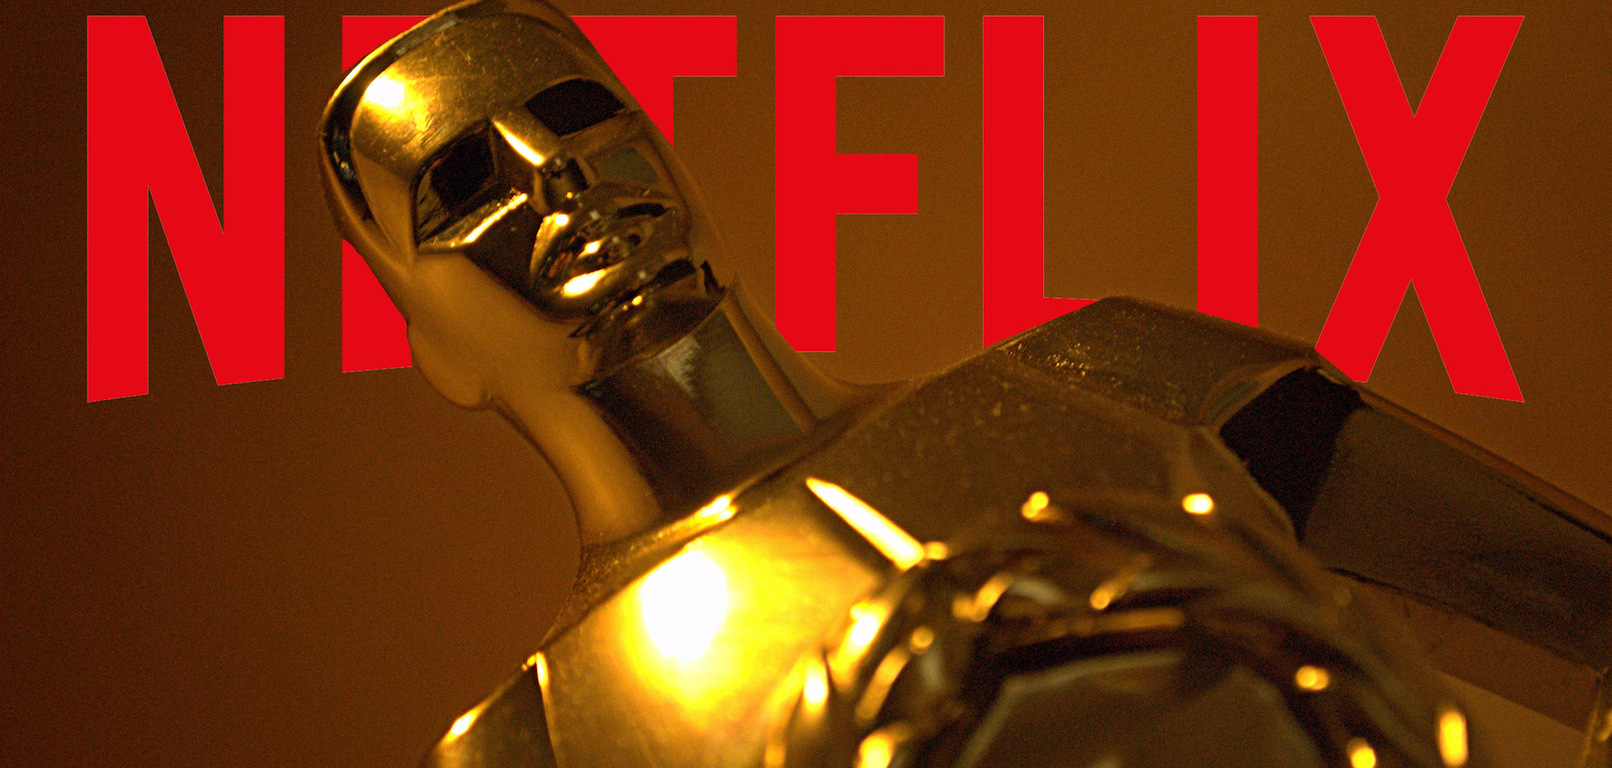 Oscar statue in front of Netflix logo